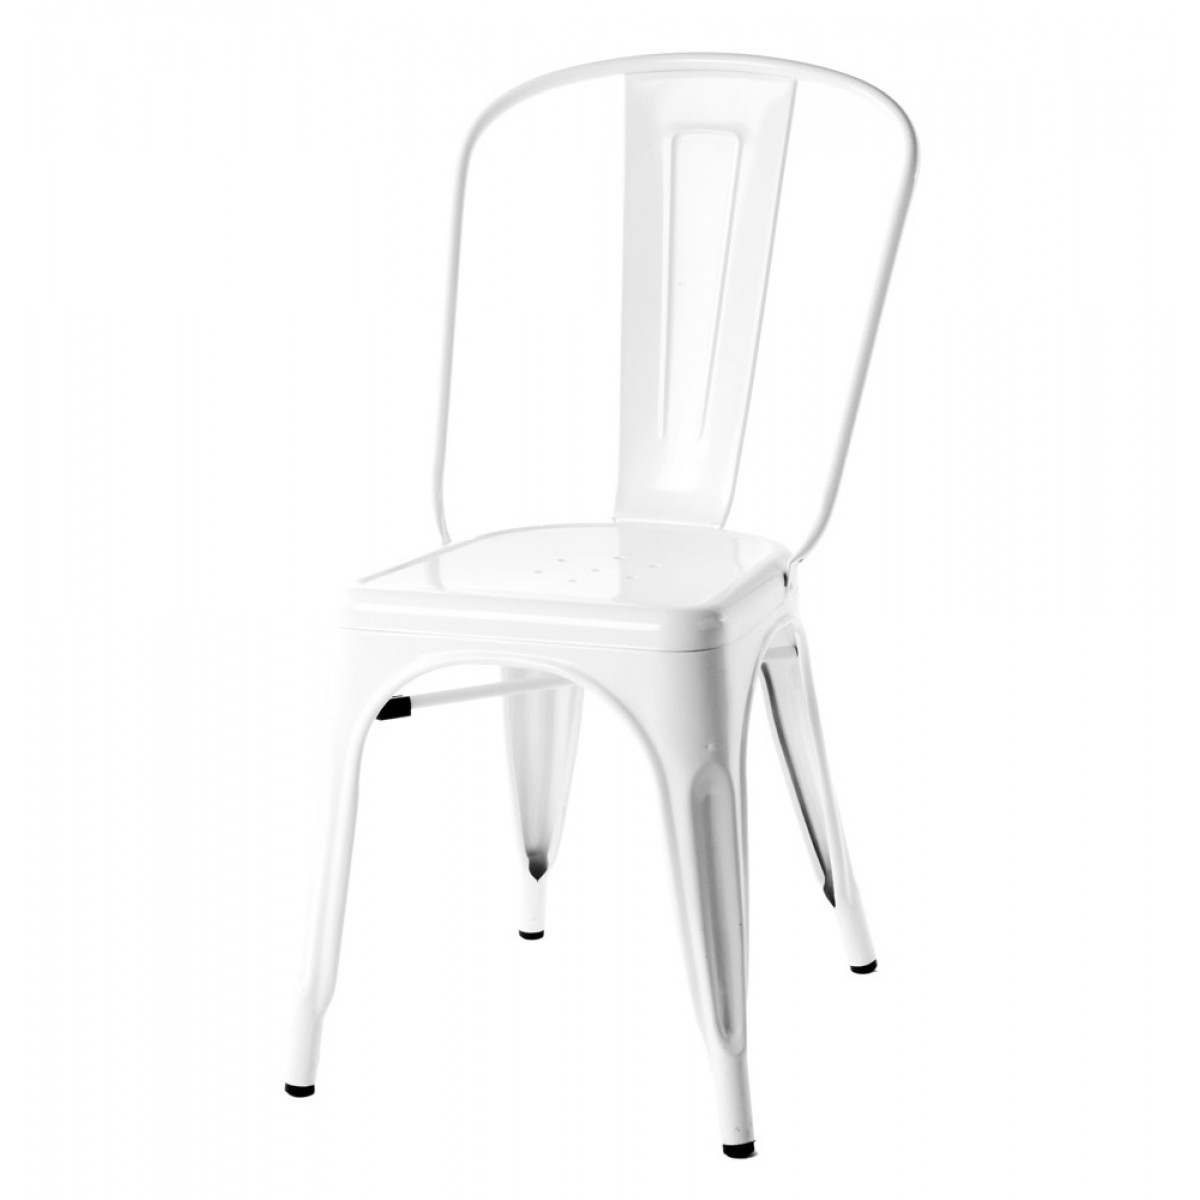 White Metal Chair Tolix Style Metal Industrial Loft Designer White Cafe Chair